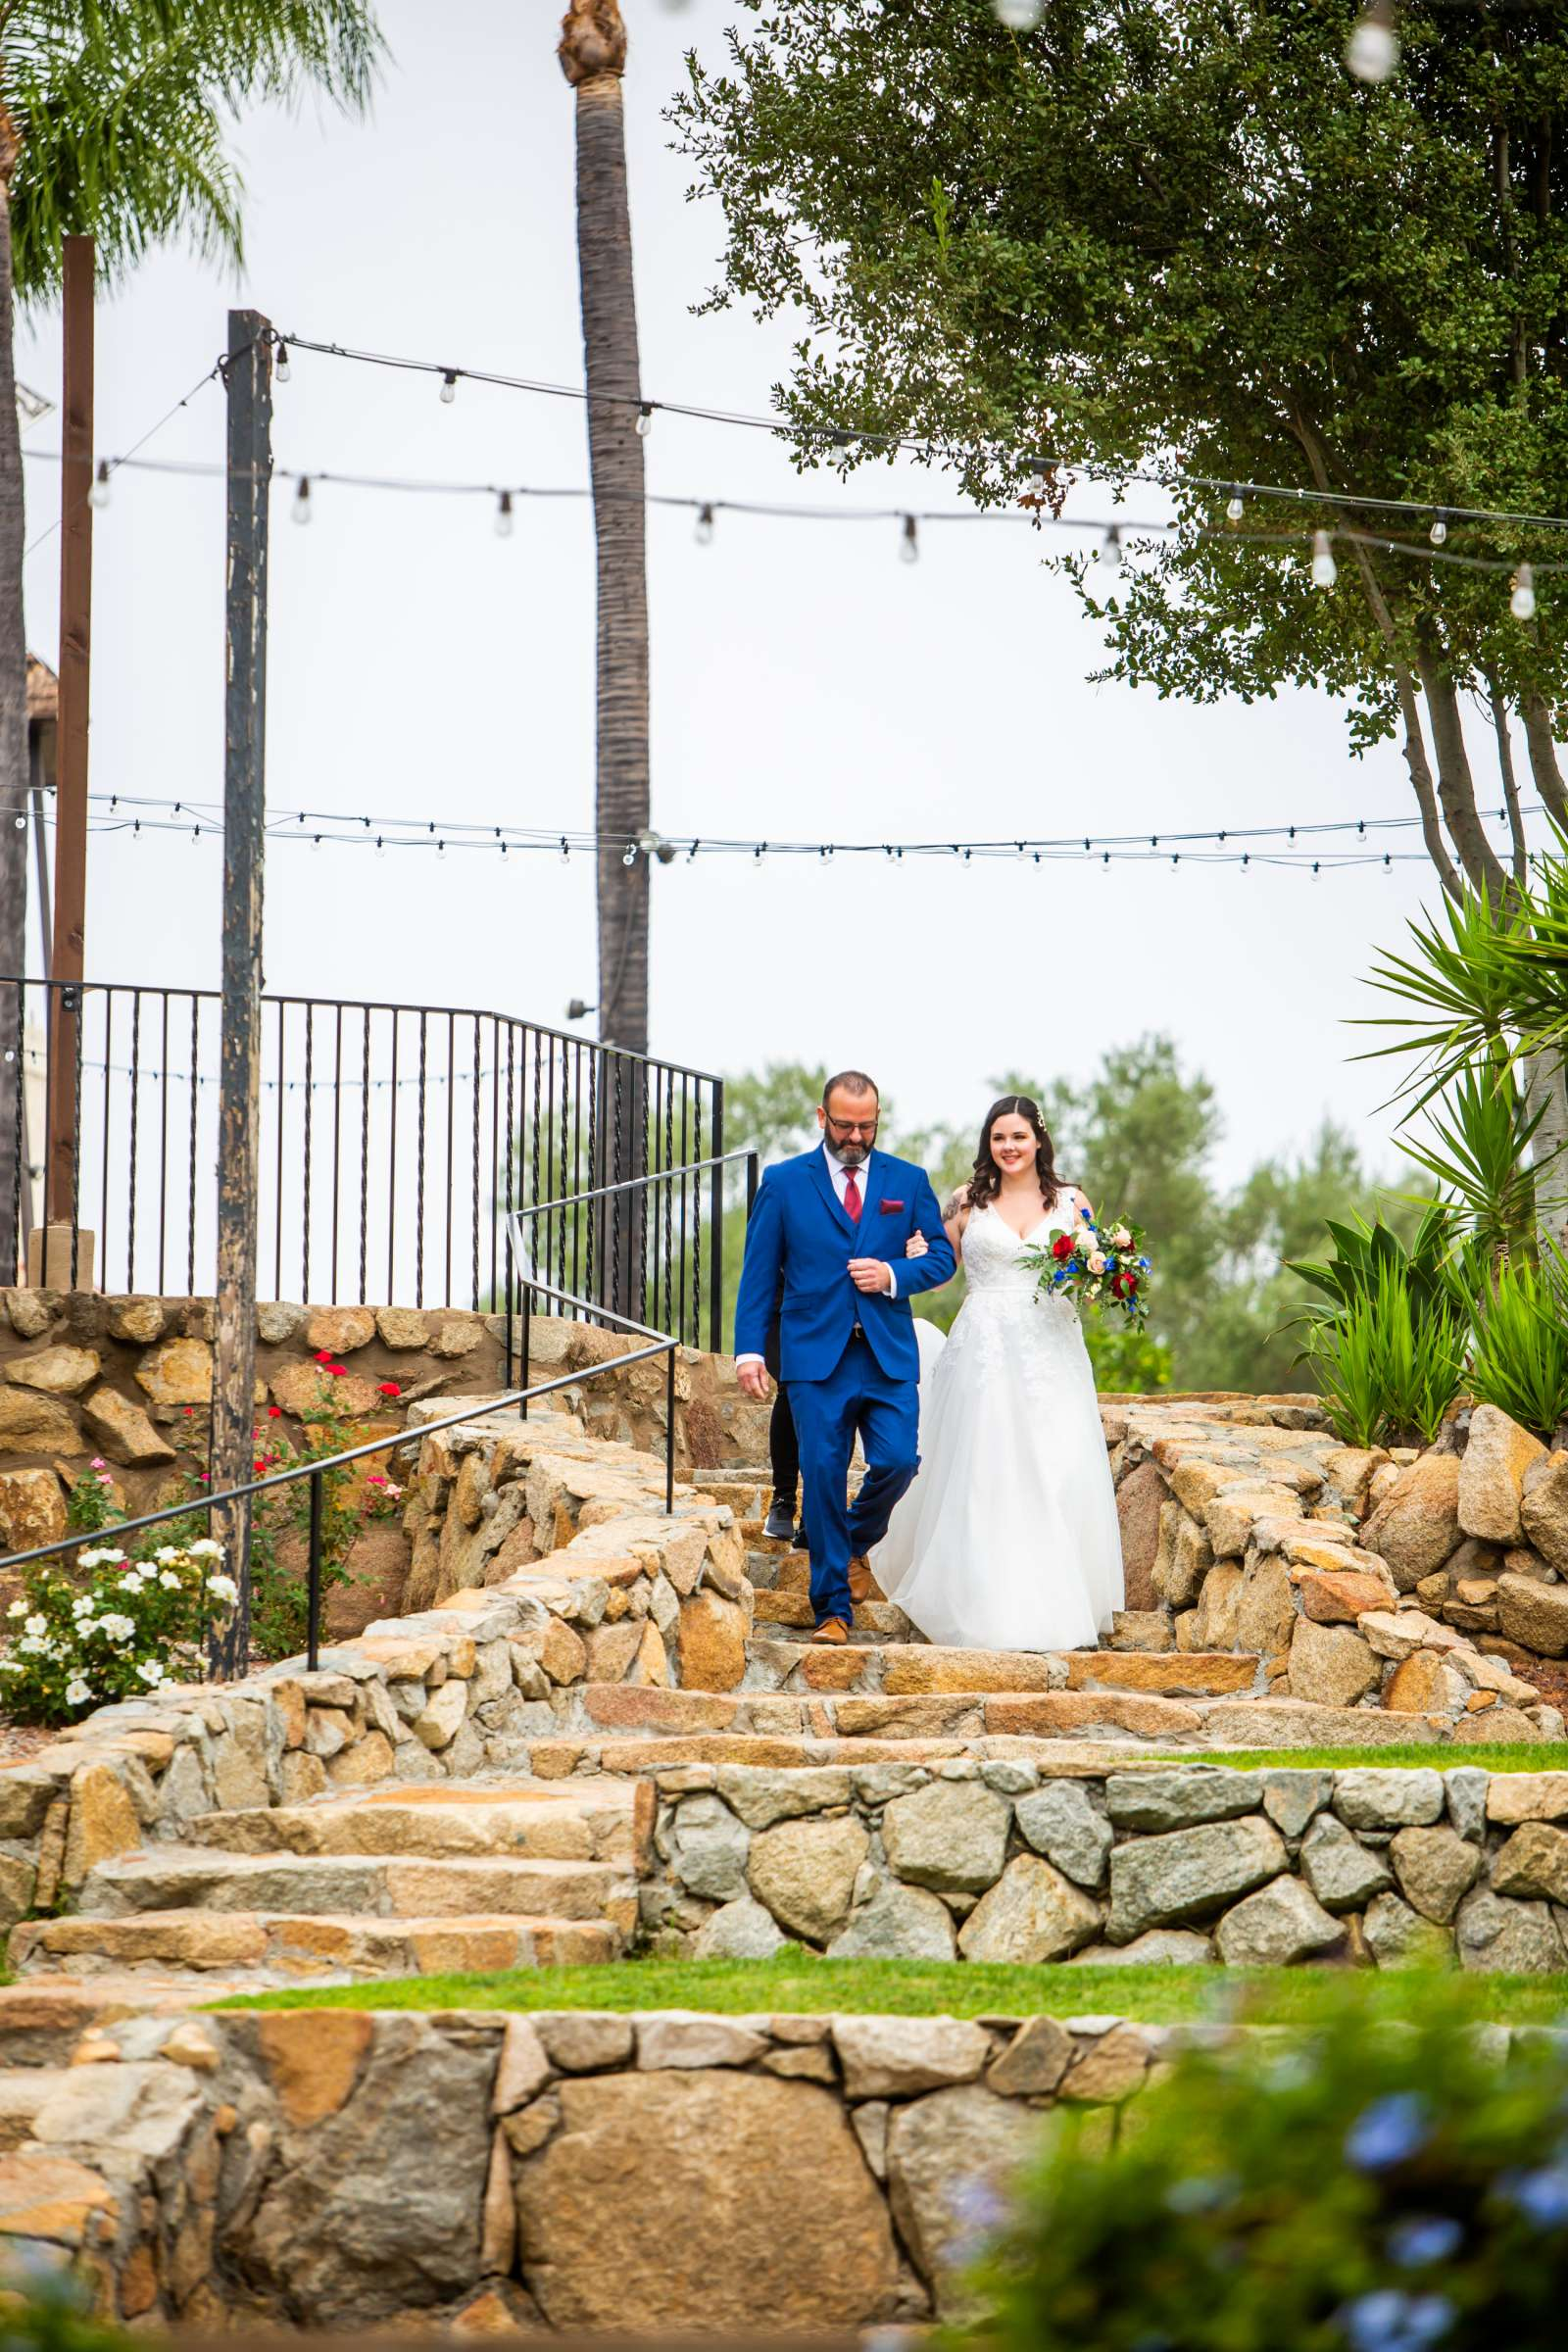 Mt Woodson Castle Wedding, Valerie and Ian Wedding Photo #55 by True Photography